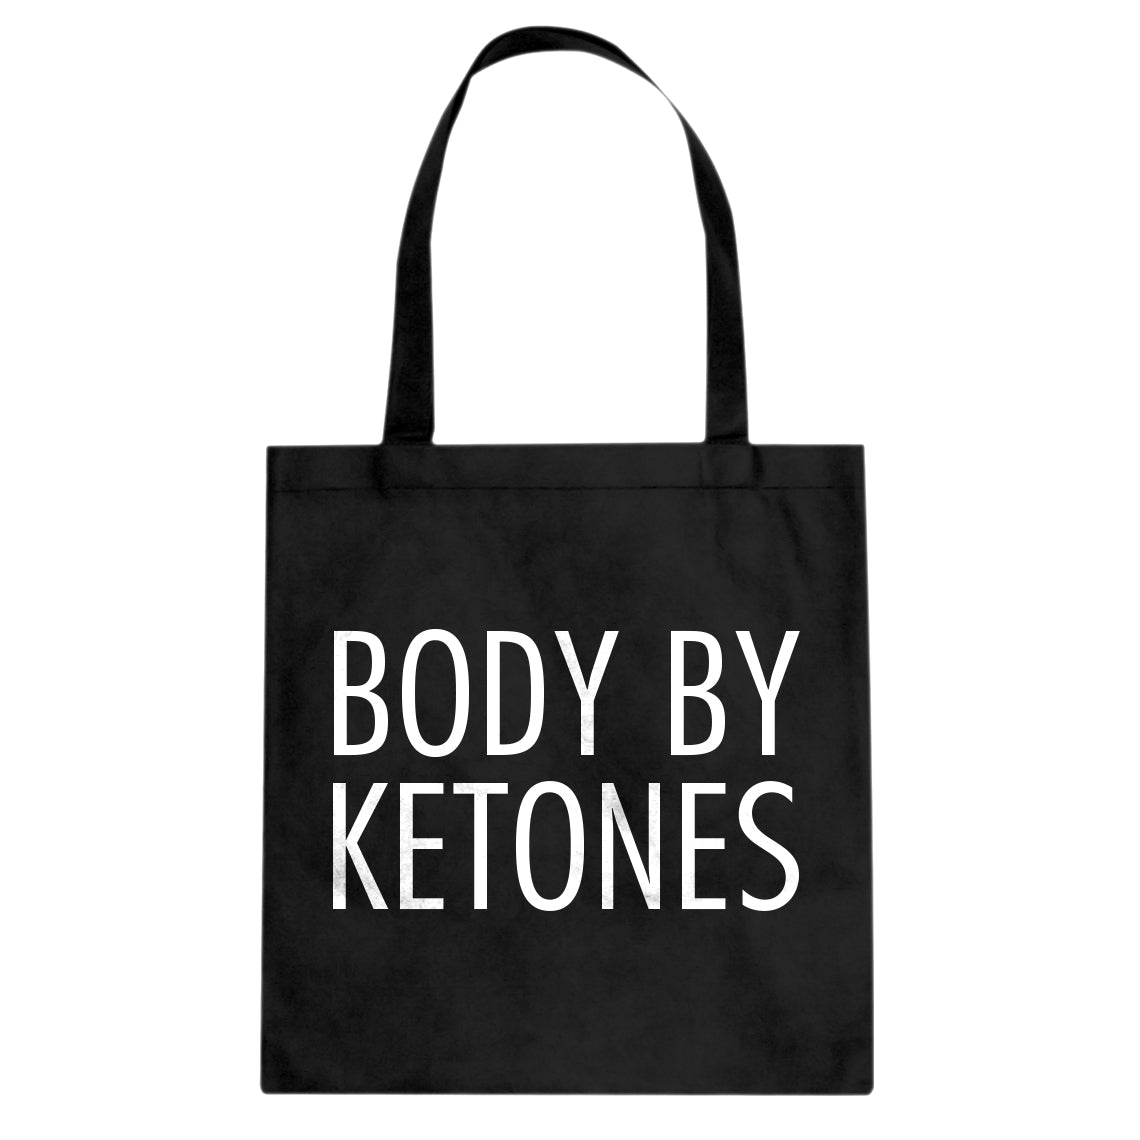 Tote Body by Ketones Canvas Tote Bag